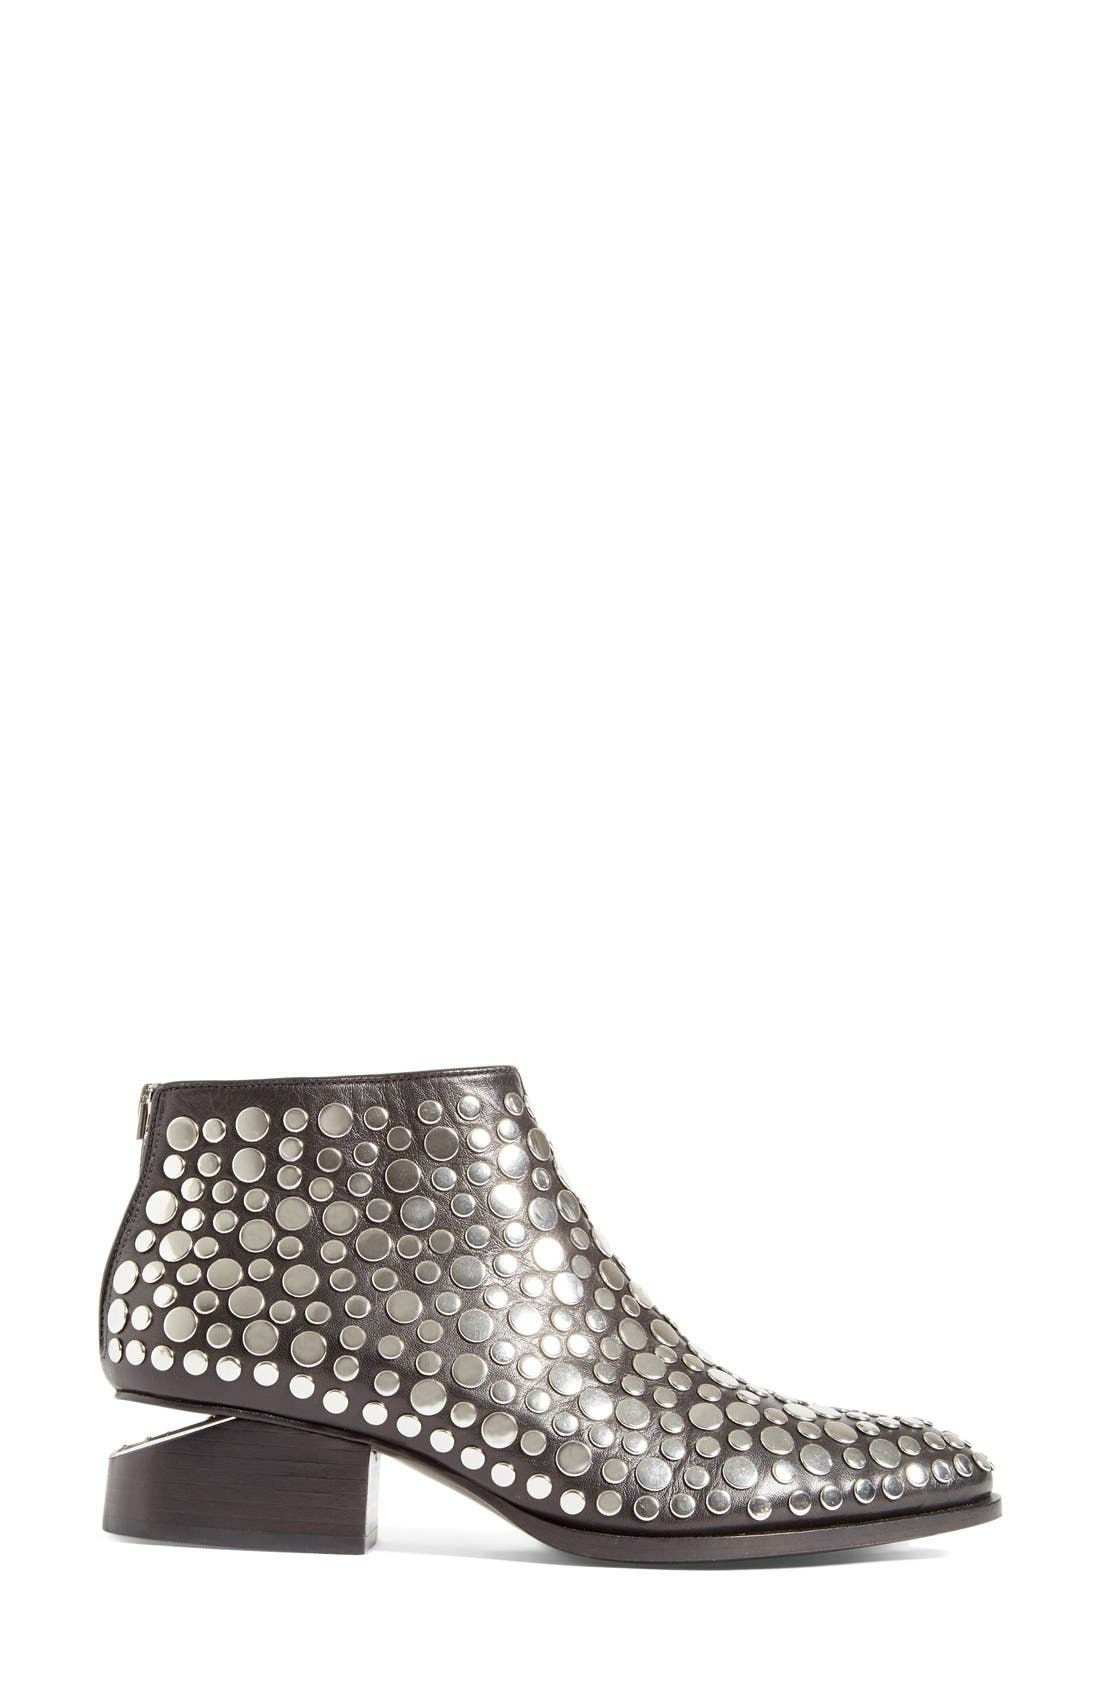 'Kori' Studded Bootie,                             Alternate thumbnail 4, color,                             001